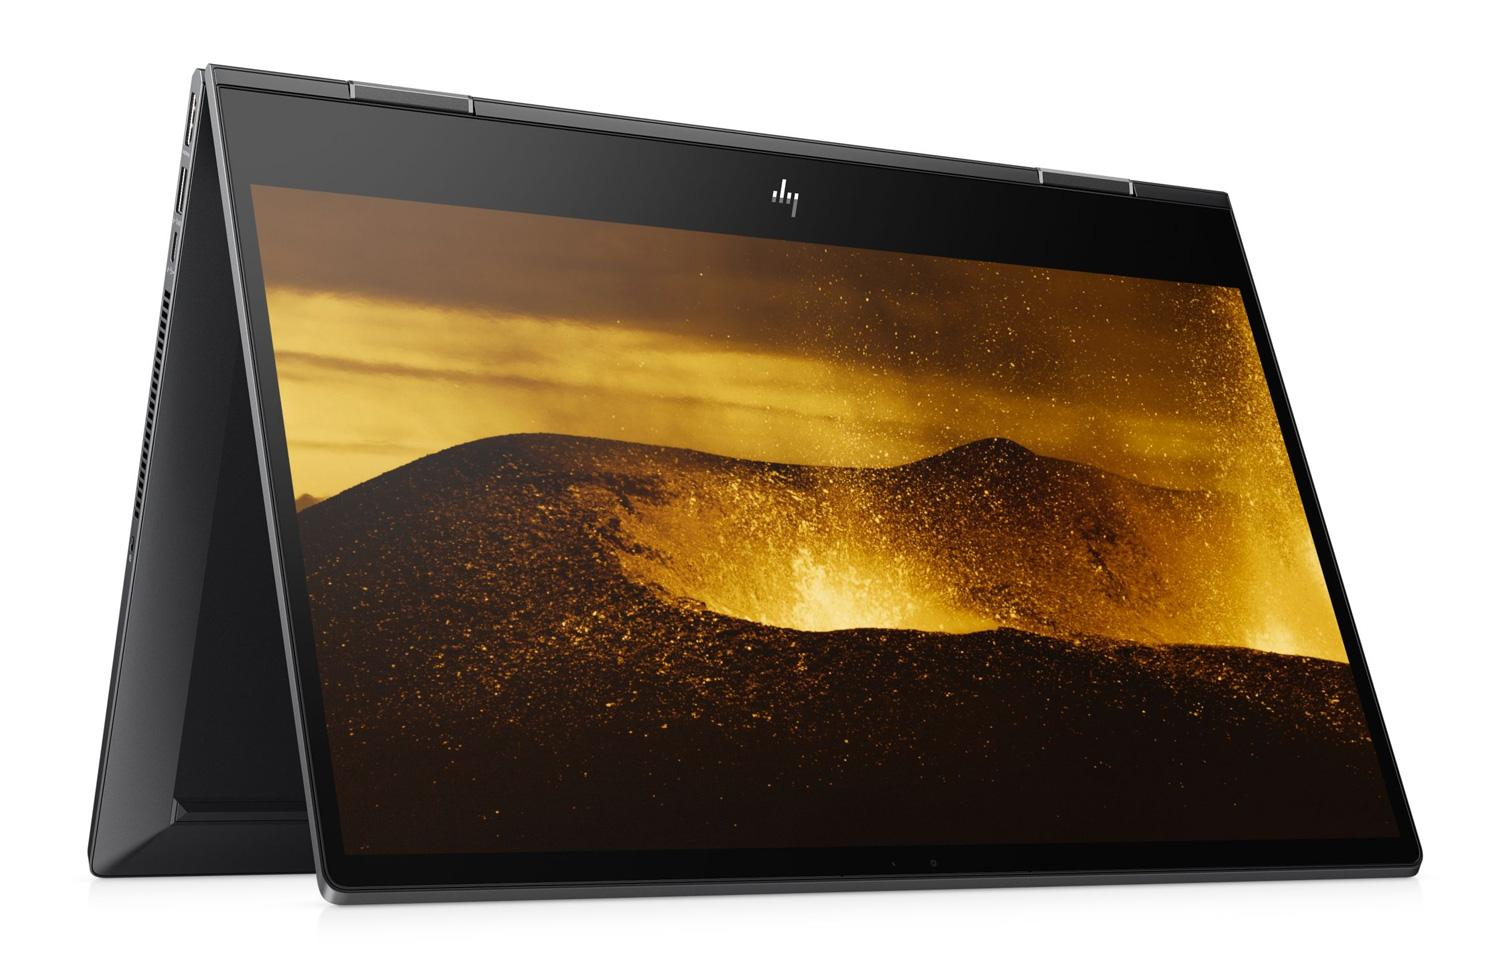 Image du PC portable HP Envy x360 15-ds0004nf Noir cendre tactile - AMD Ryzen 5